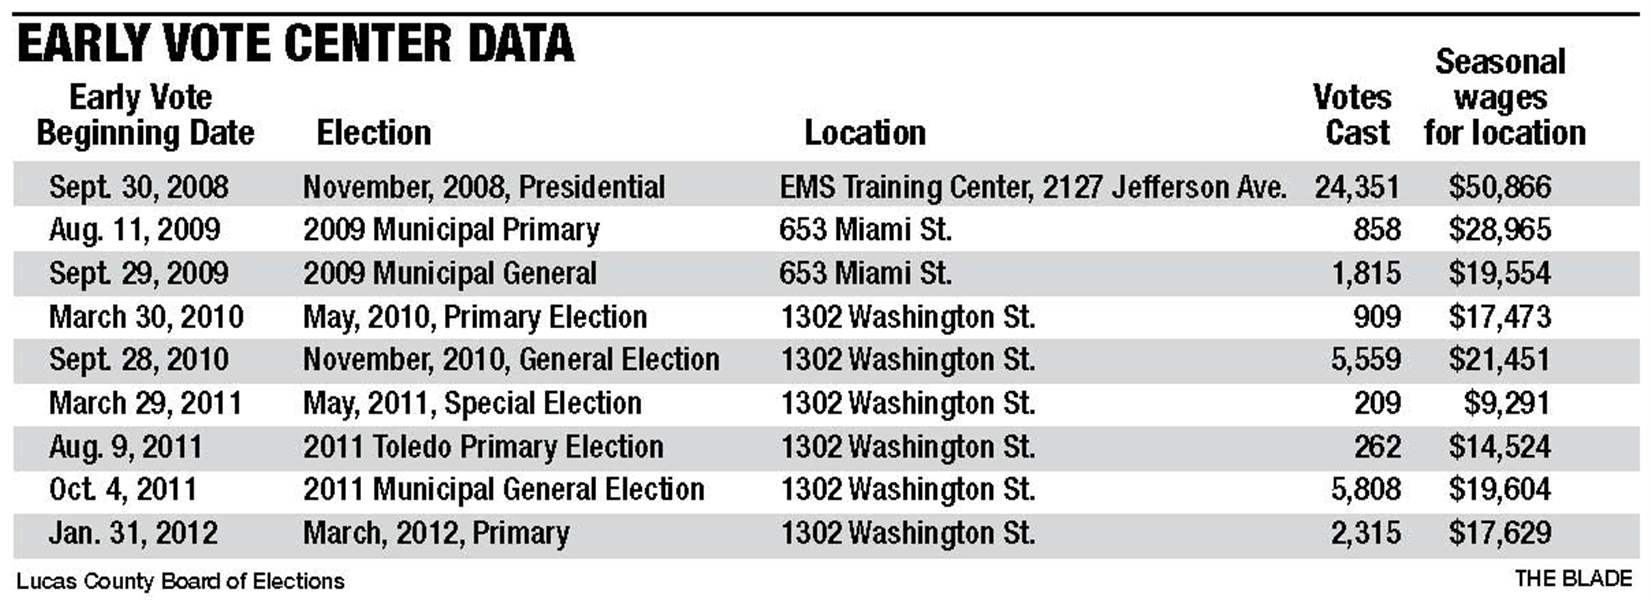 early-vote-center-data